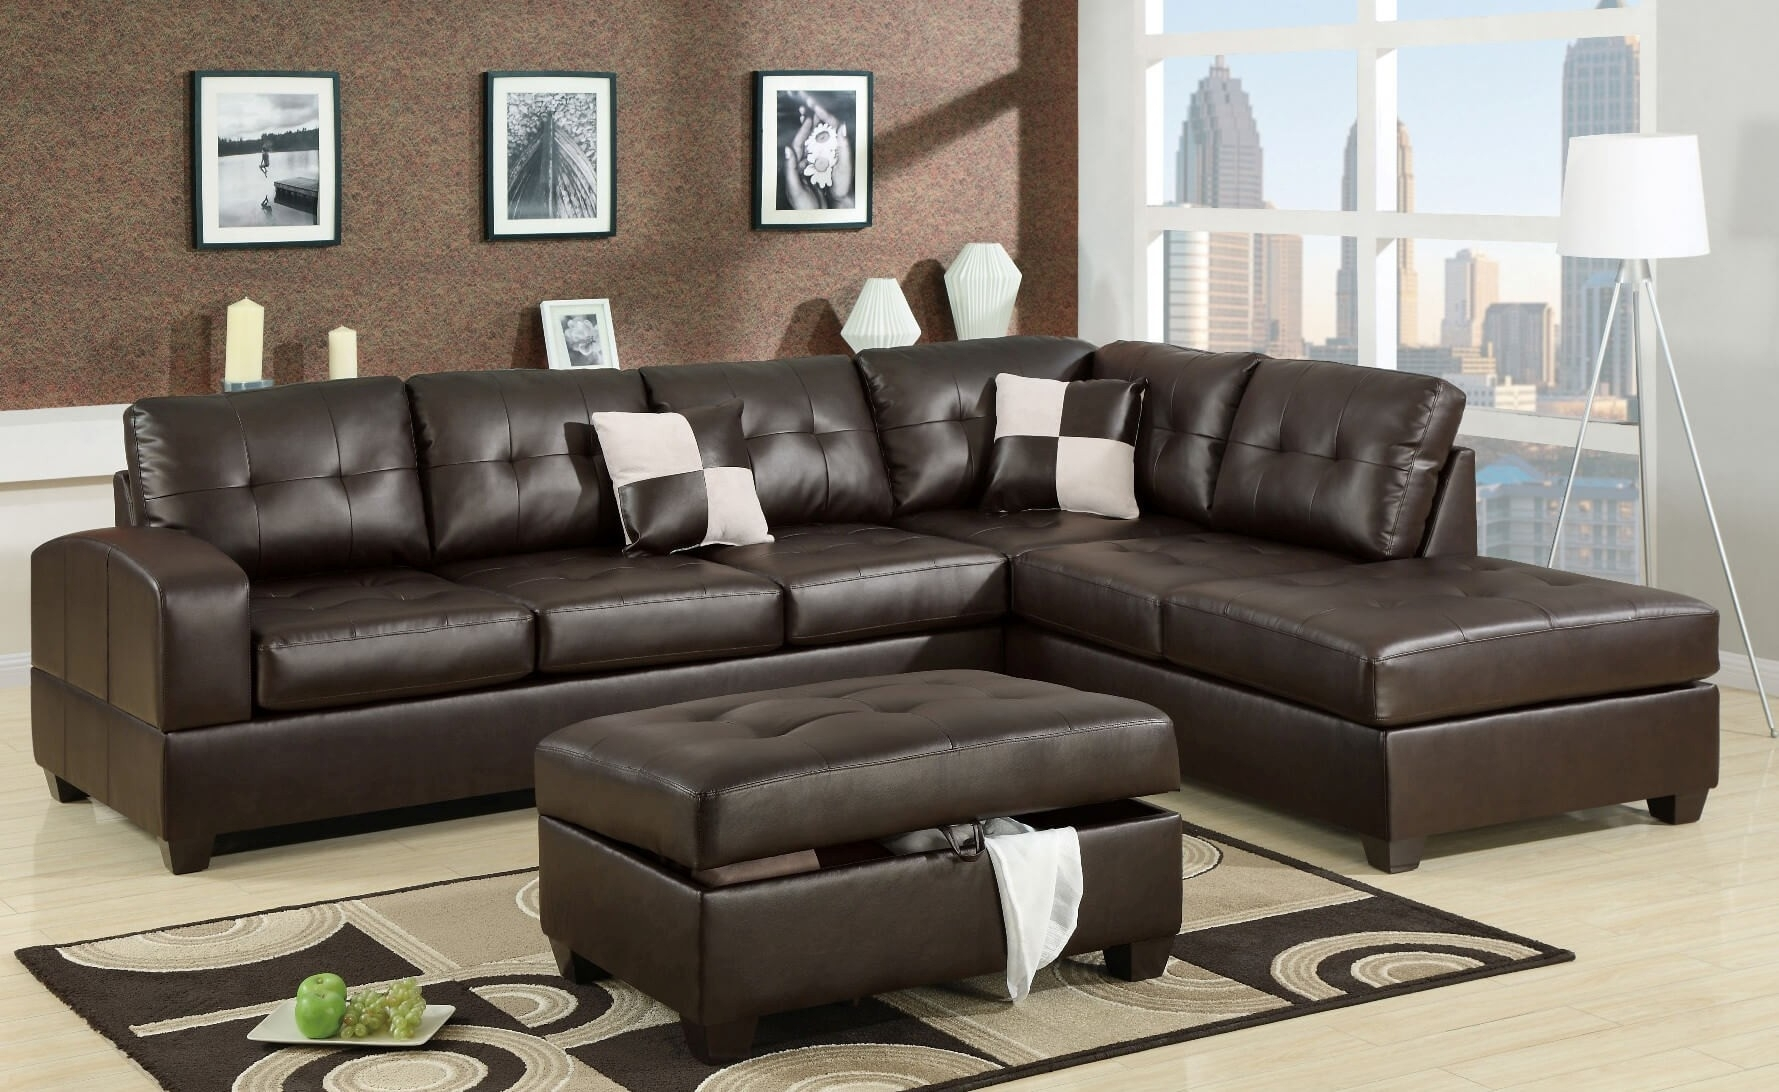 Best Of Cheap Sectional Sofas Under 500 Décor | Sofa Gallery Image inside Sectional Sofas Under 500 (Image 3 of 15)